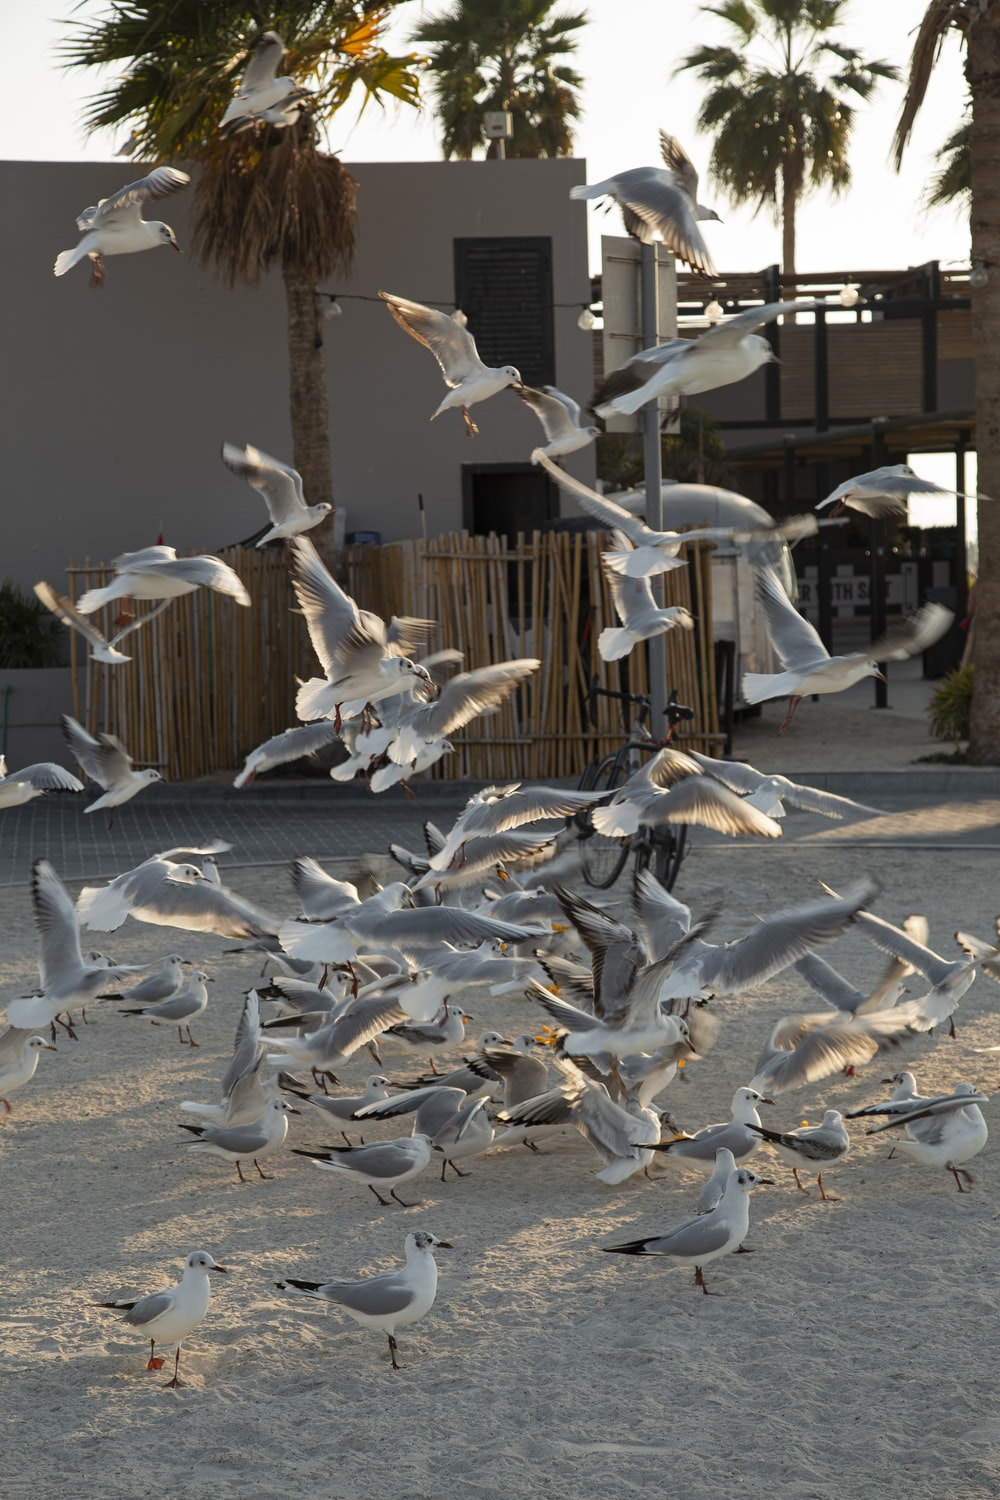 flock of white birds flying over the brown wooden house during daytime